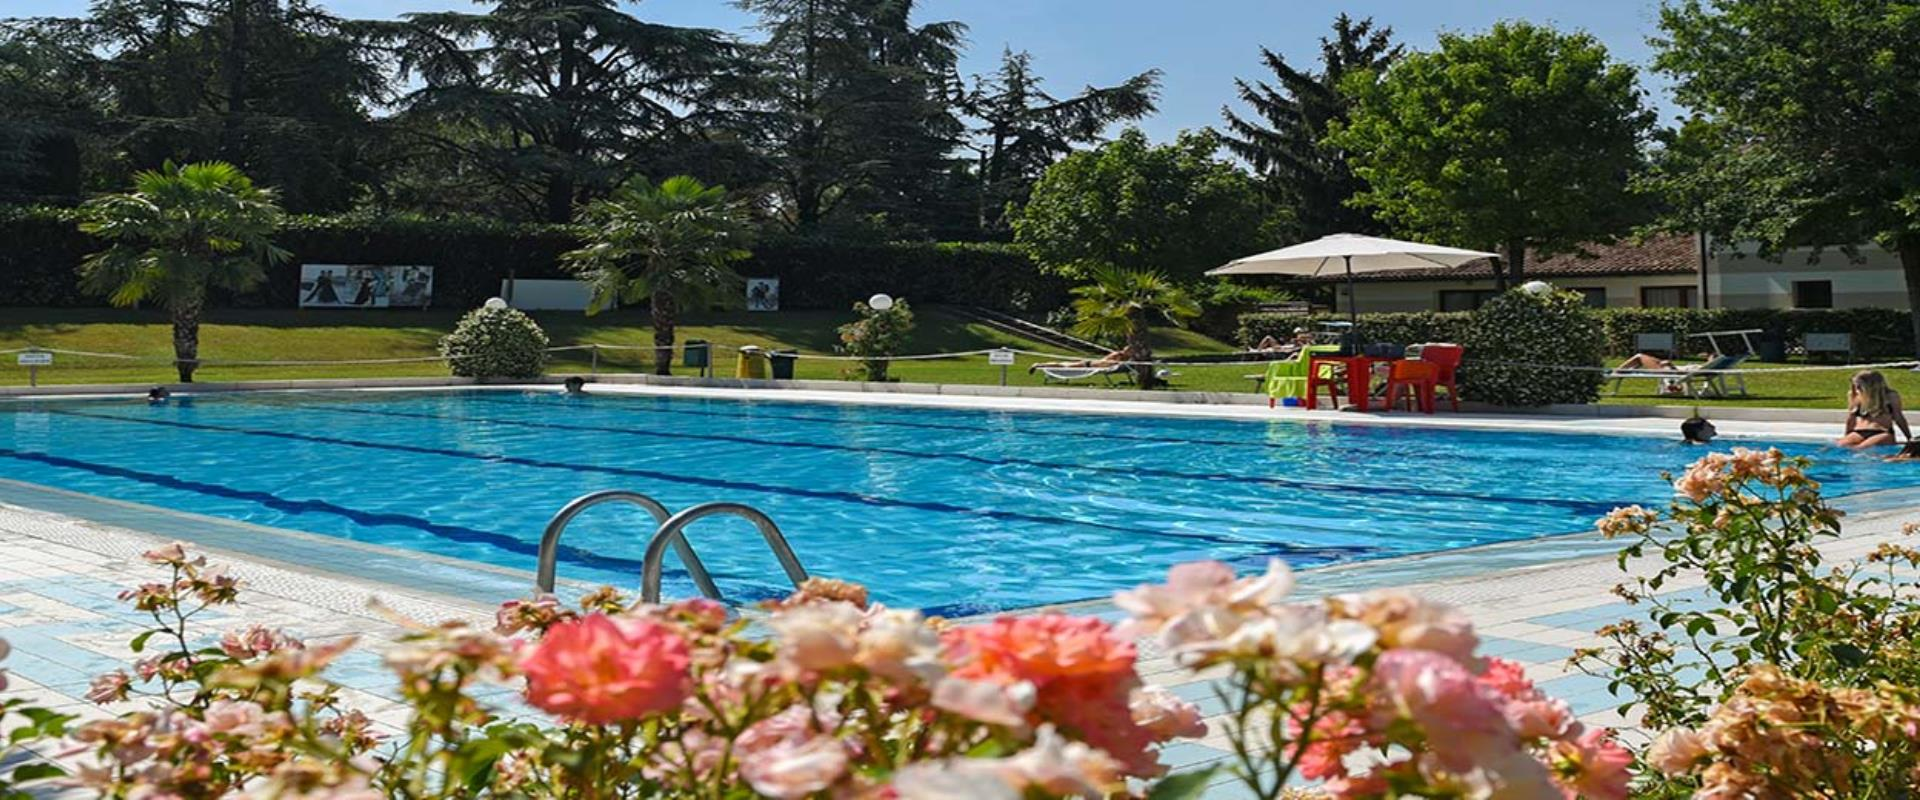 Best western hotel modena resort 4 stelle a casinalbo di for Piscine club piscine